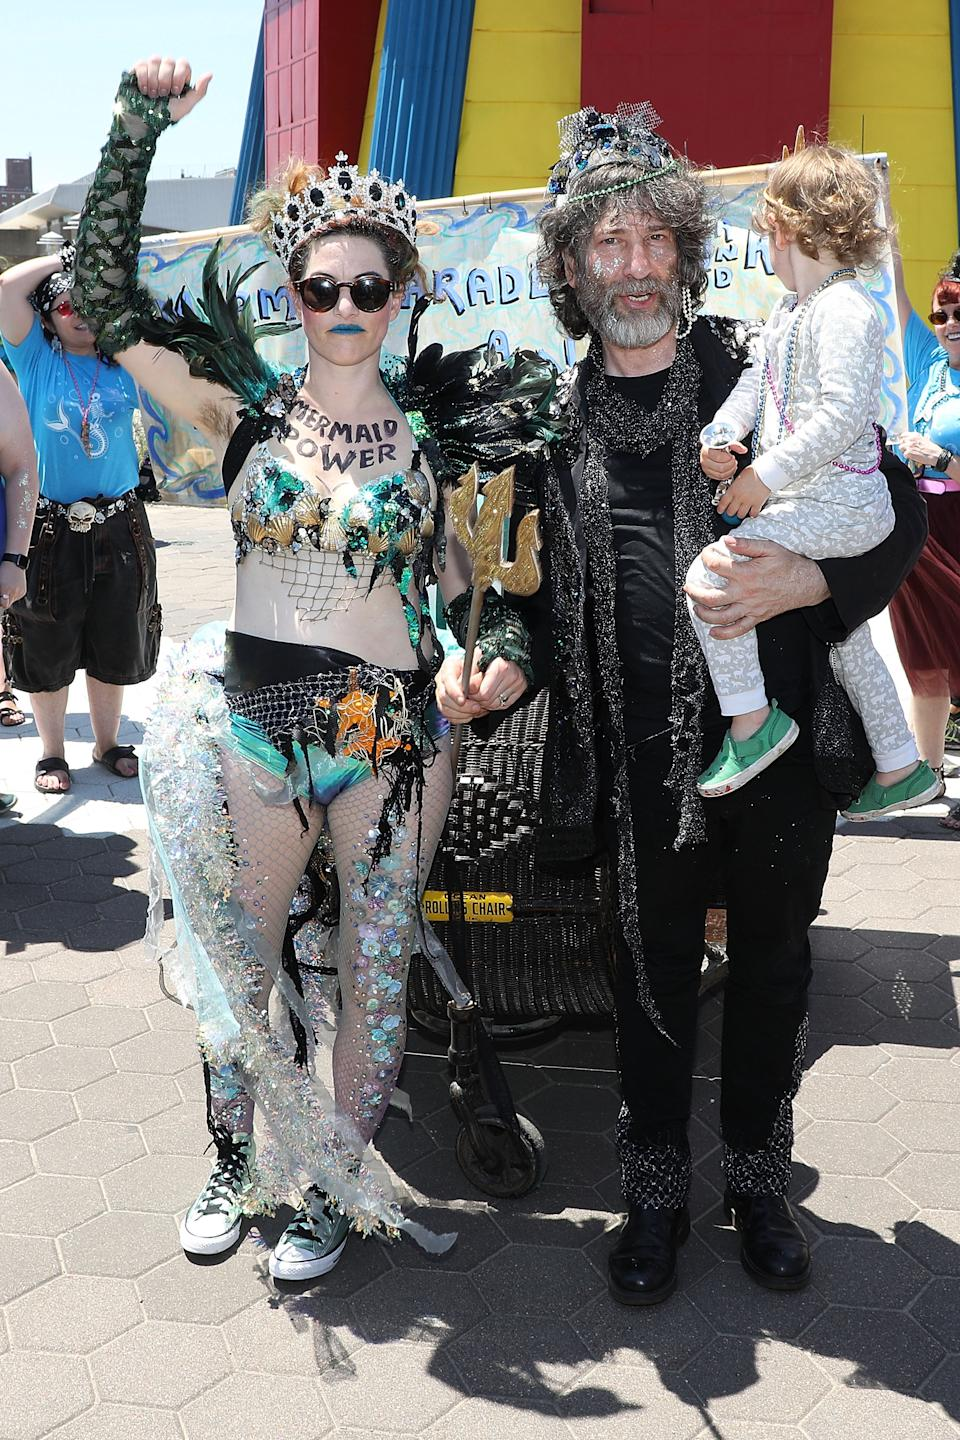 NEW YORK, NY - JUNE 16:  Amanda Palmer, Neil Gaiman, and Anthony Gaiman attend the 2018 Coney Island Mermaid Parade on June 16, 2018 in New York City.  (Photo by Taylor Hill/Getty Images)